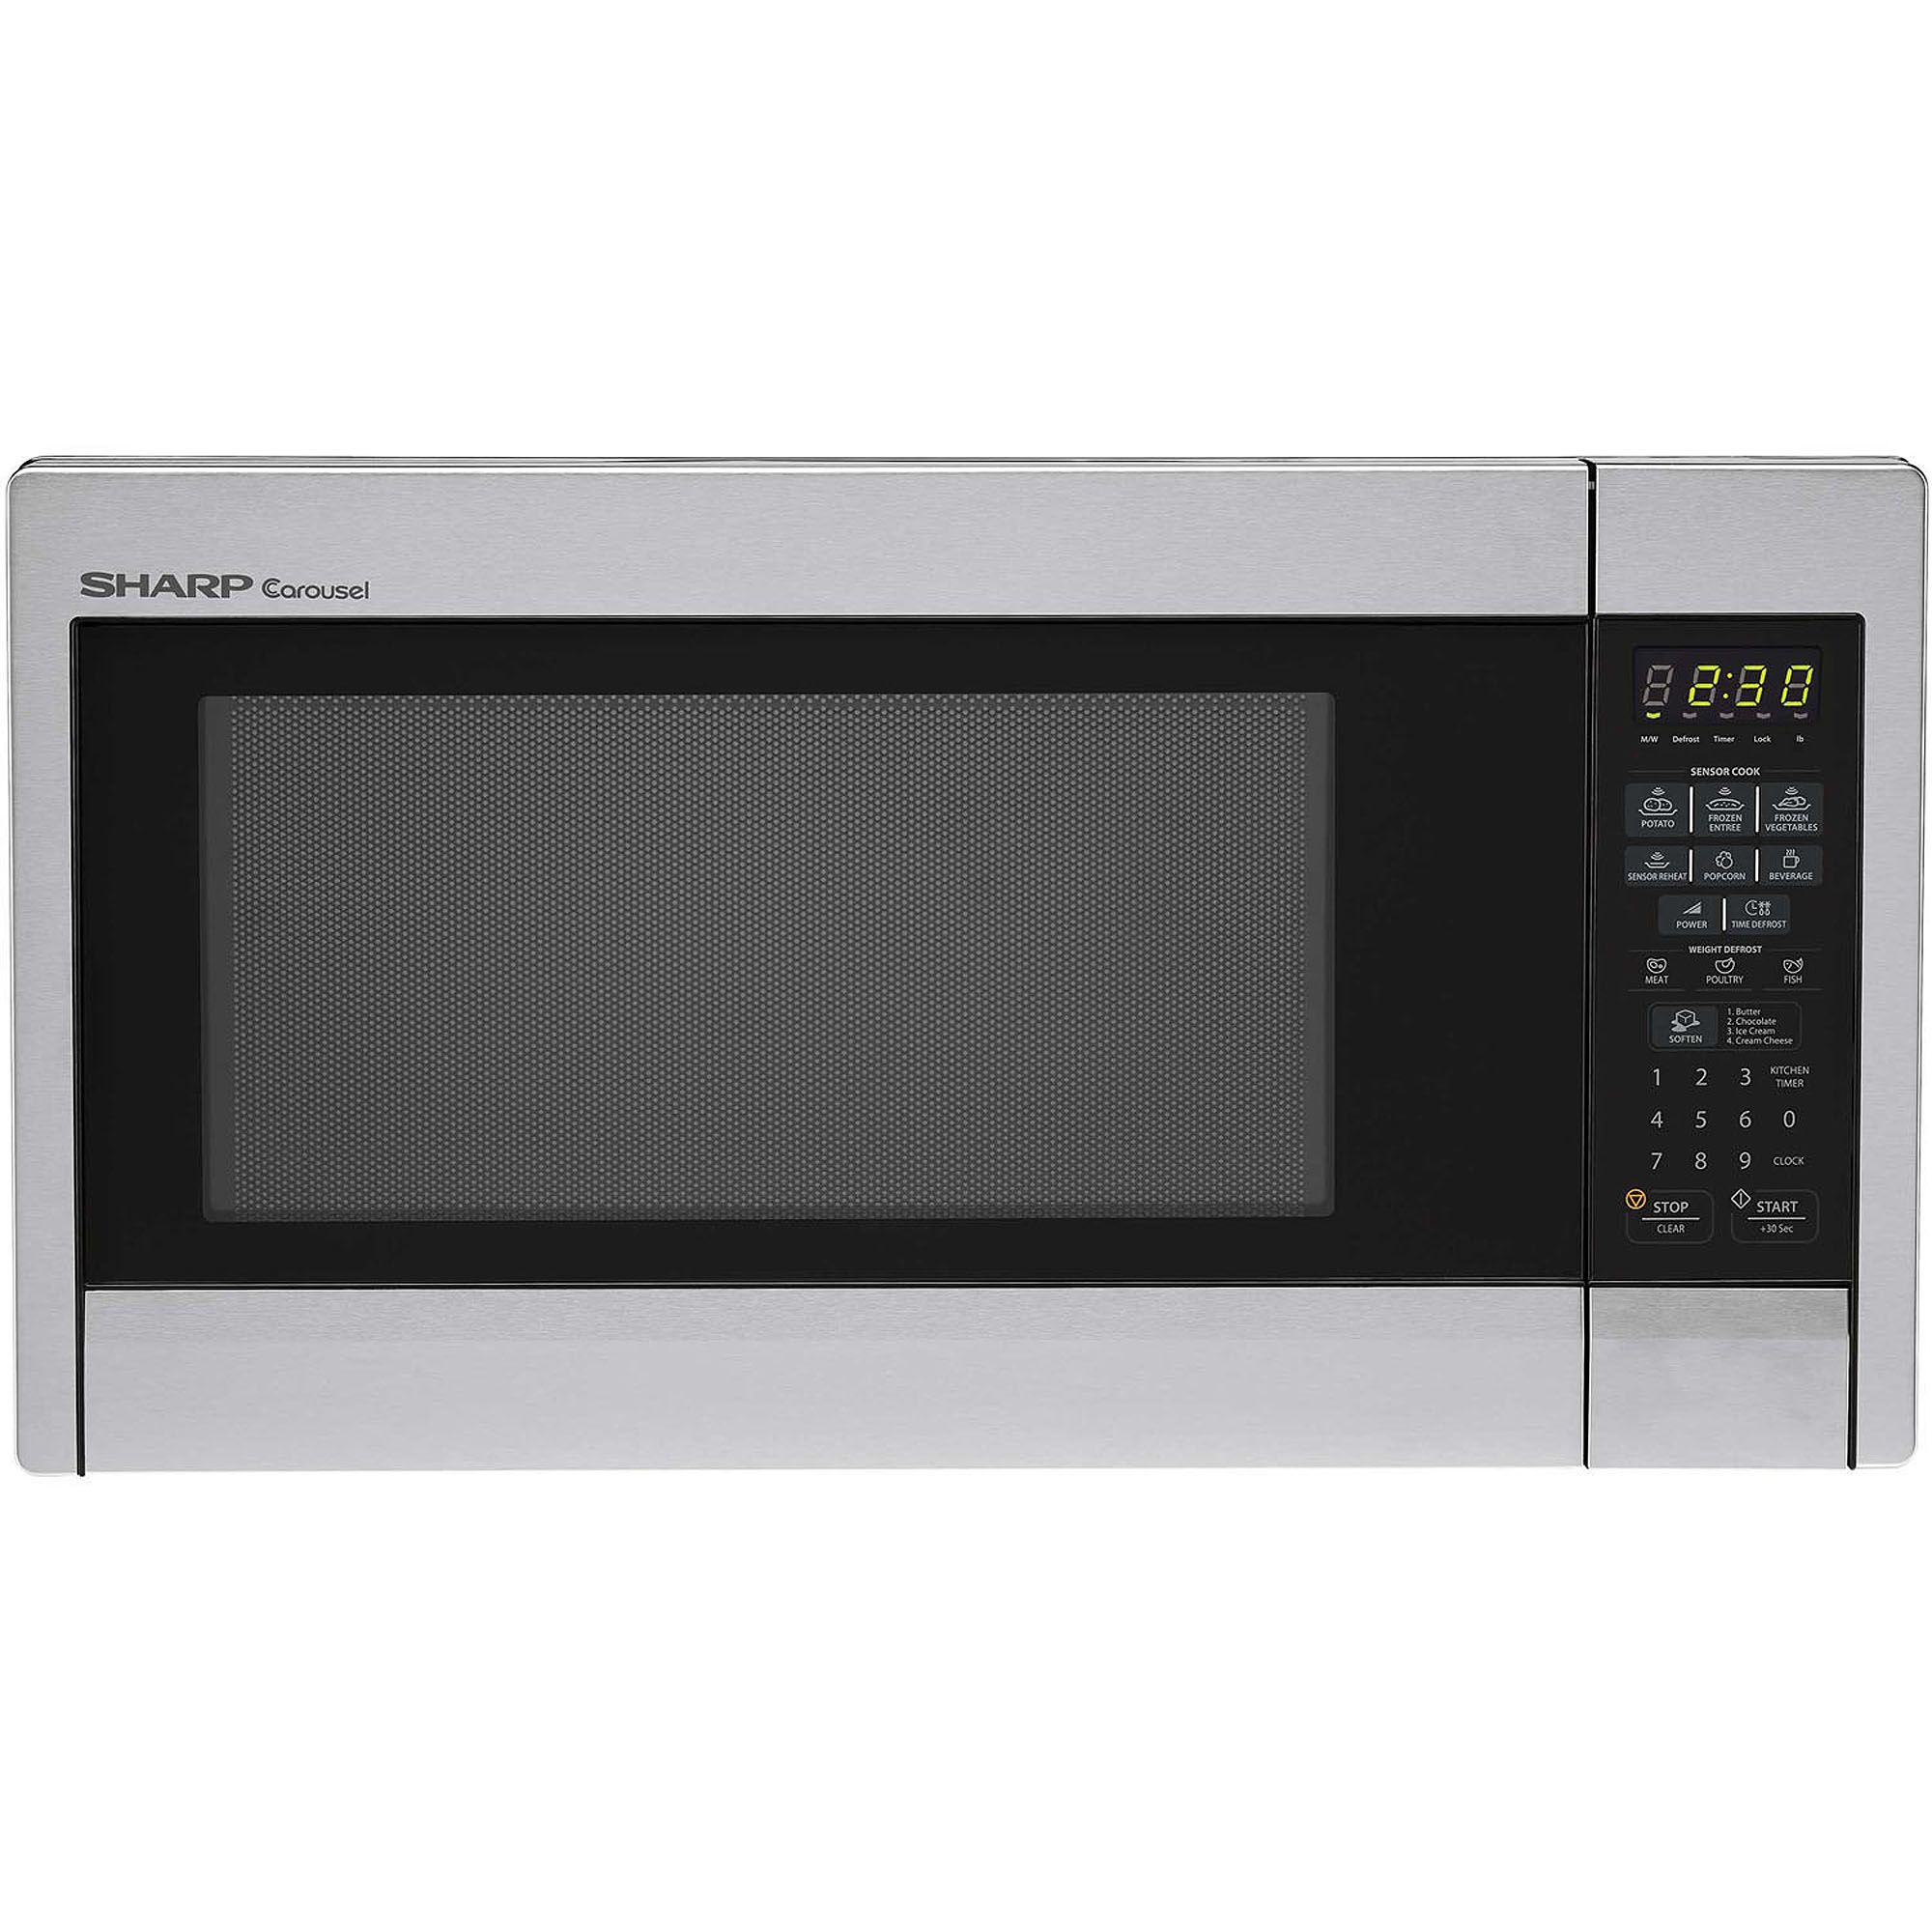 Sharp R451zs Carousel 1 3 Cu Ft 1000w Countertop Microwave